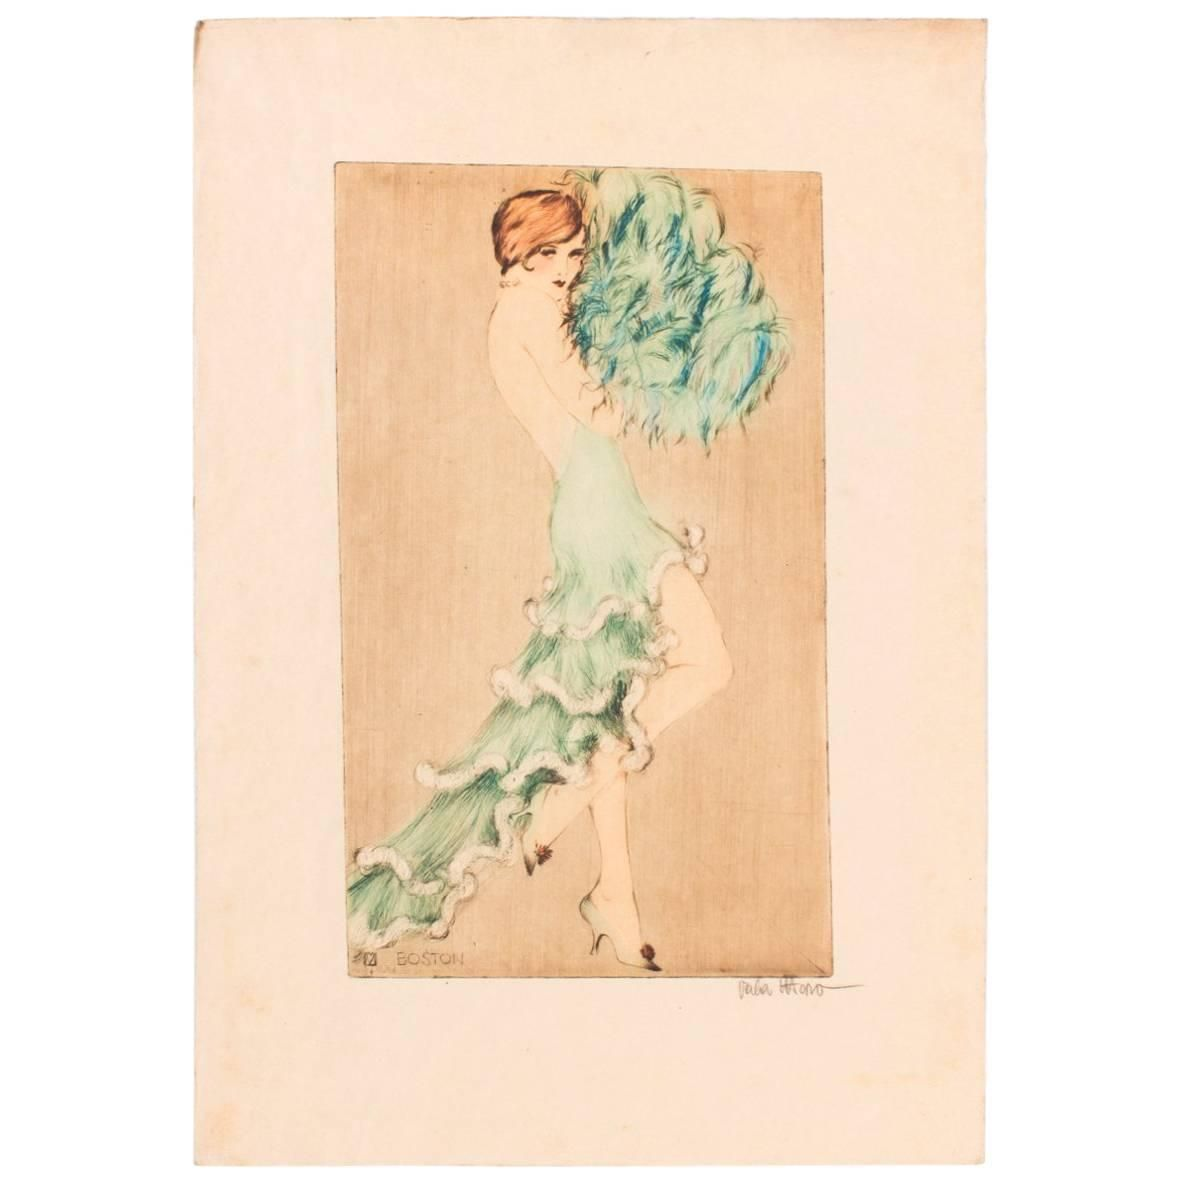 Etching by Vala Moro, Vienna Depicting an Art Deco Dancing Nude ...